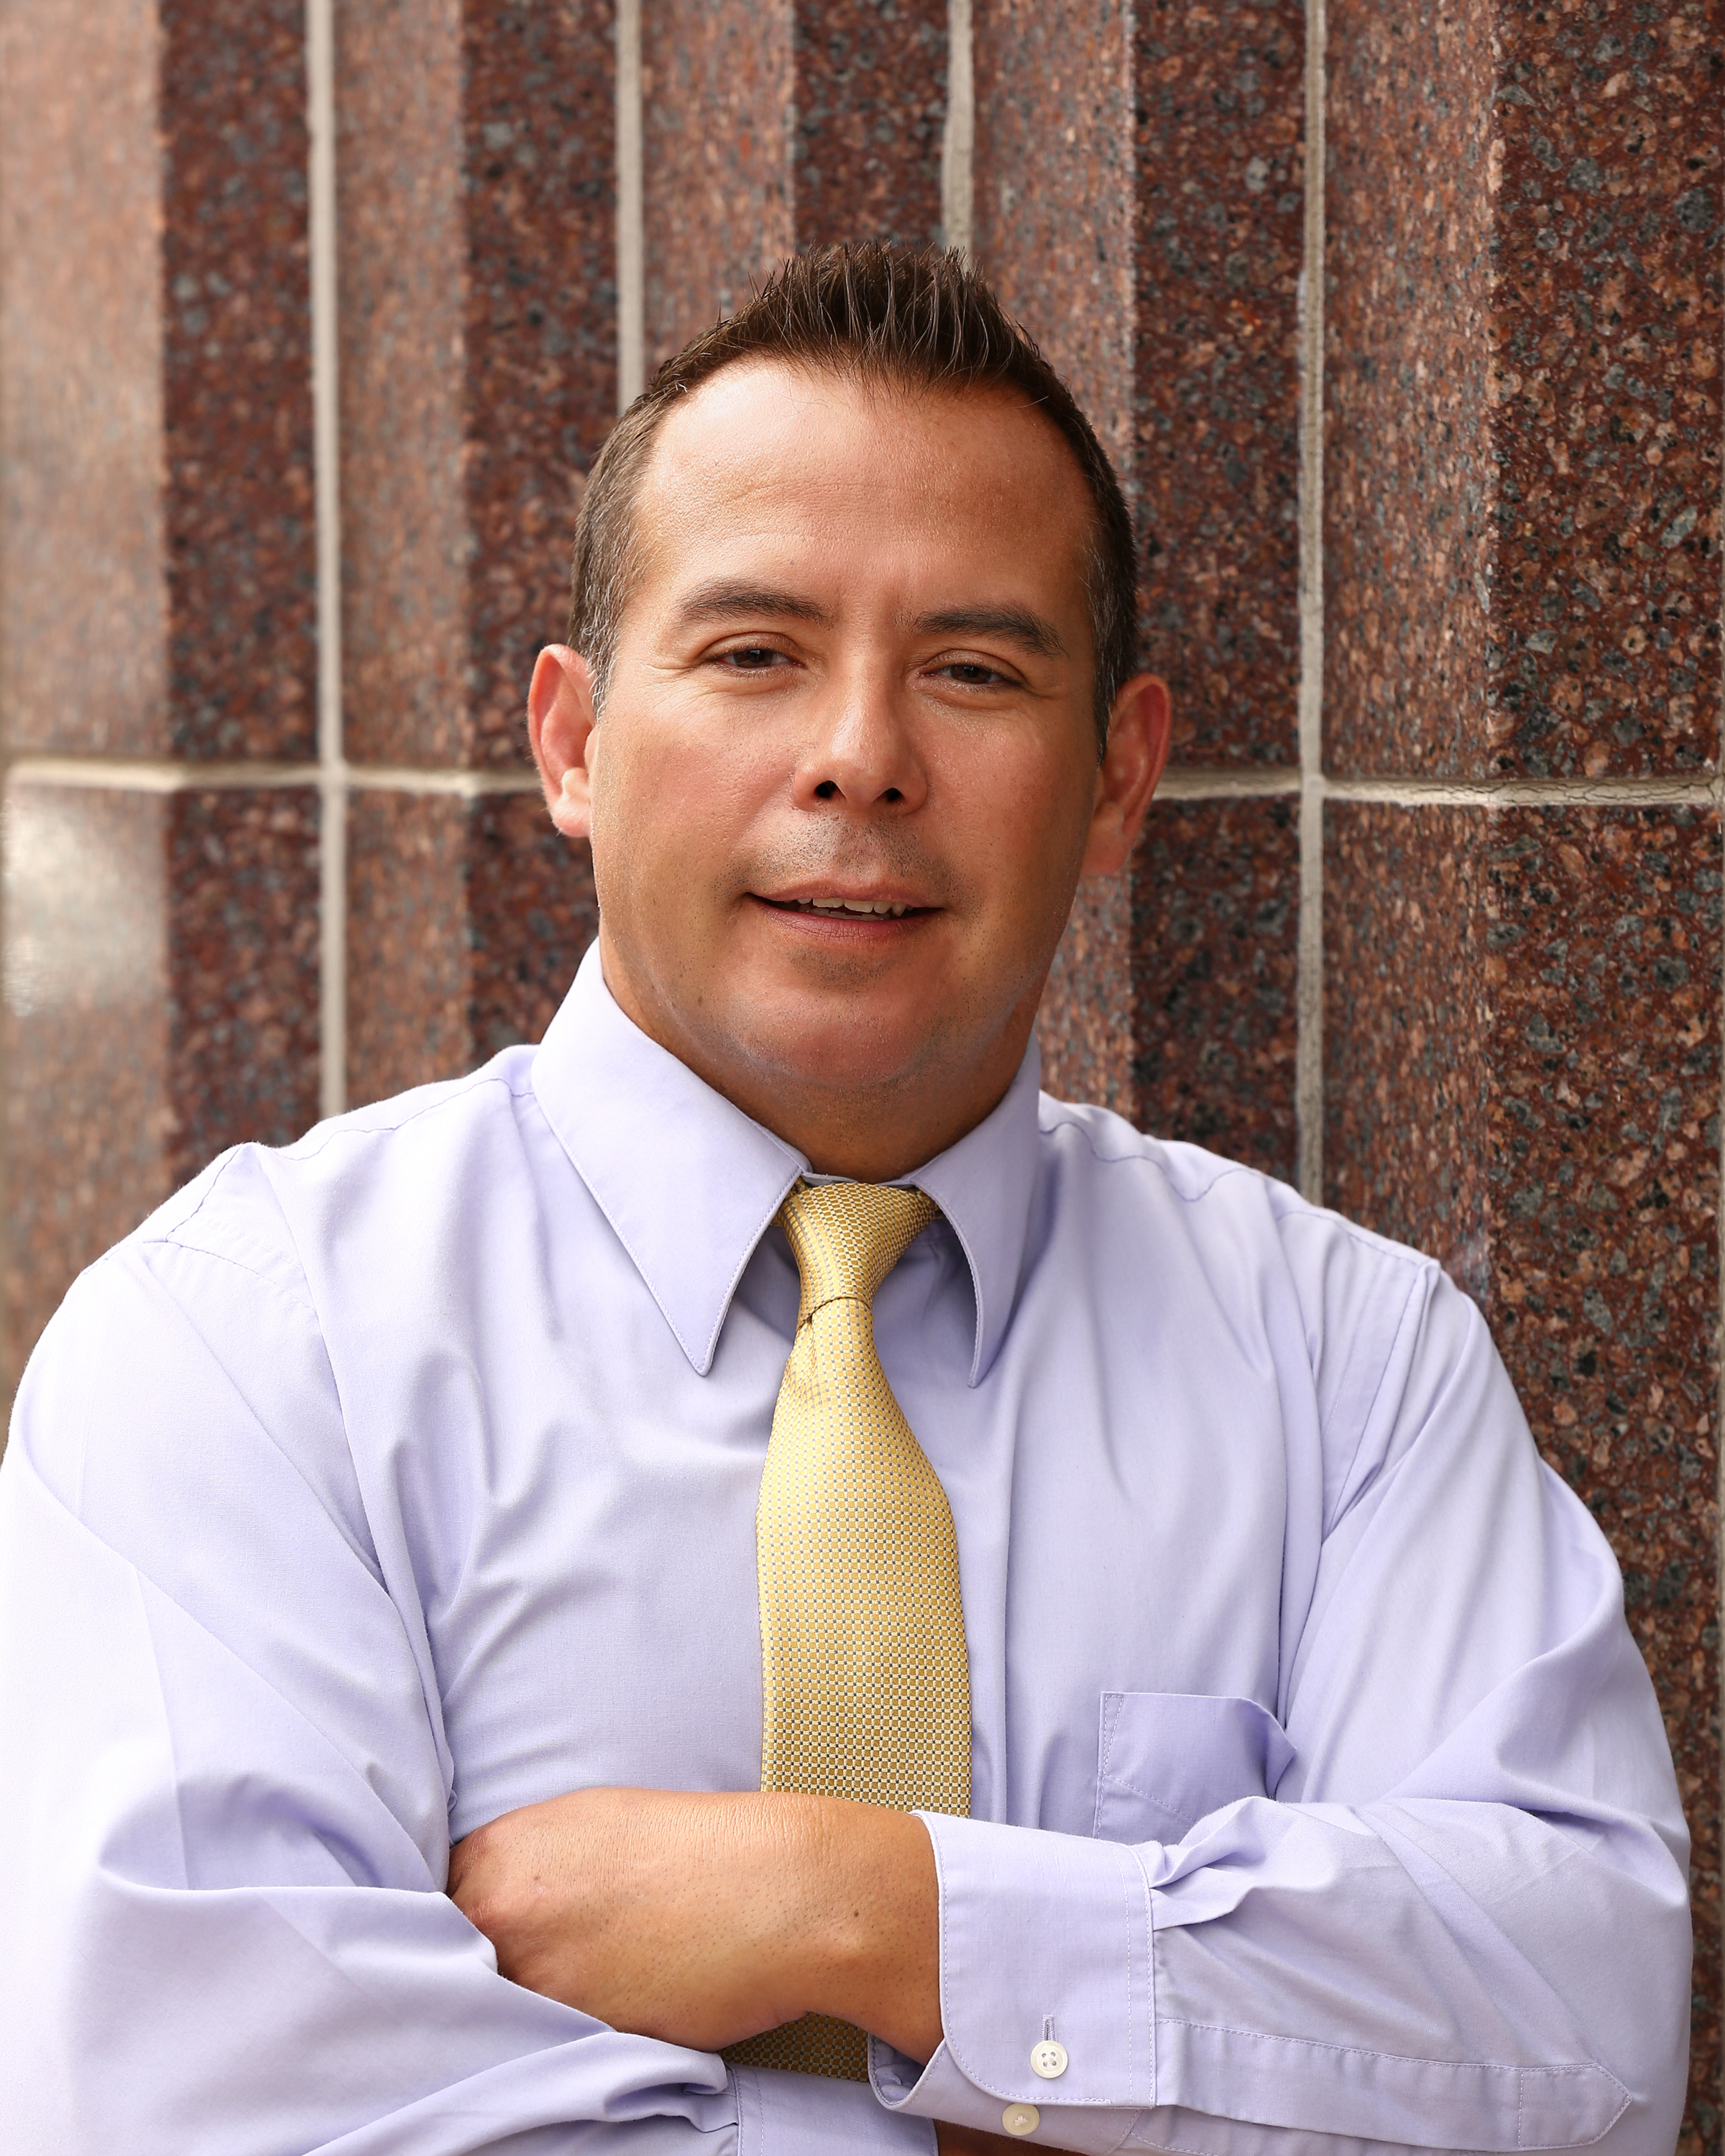 SHANE TRUJILLO Business Development Manager and Wellness Committee Member